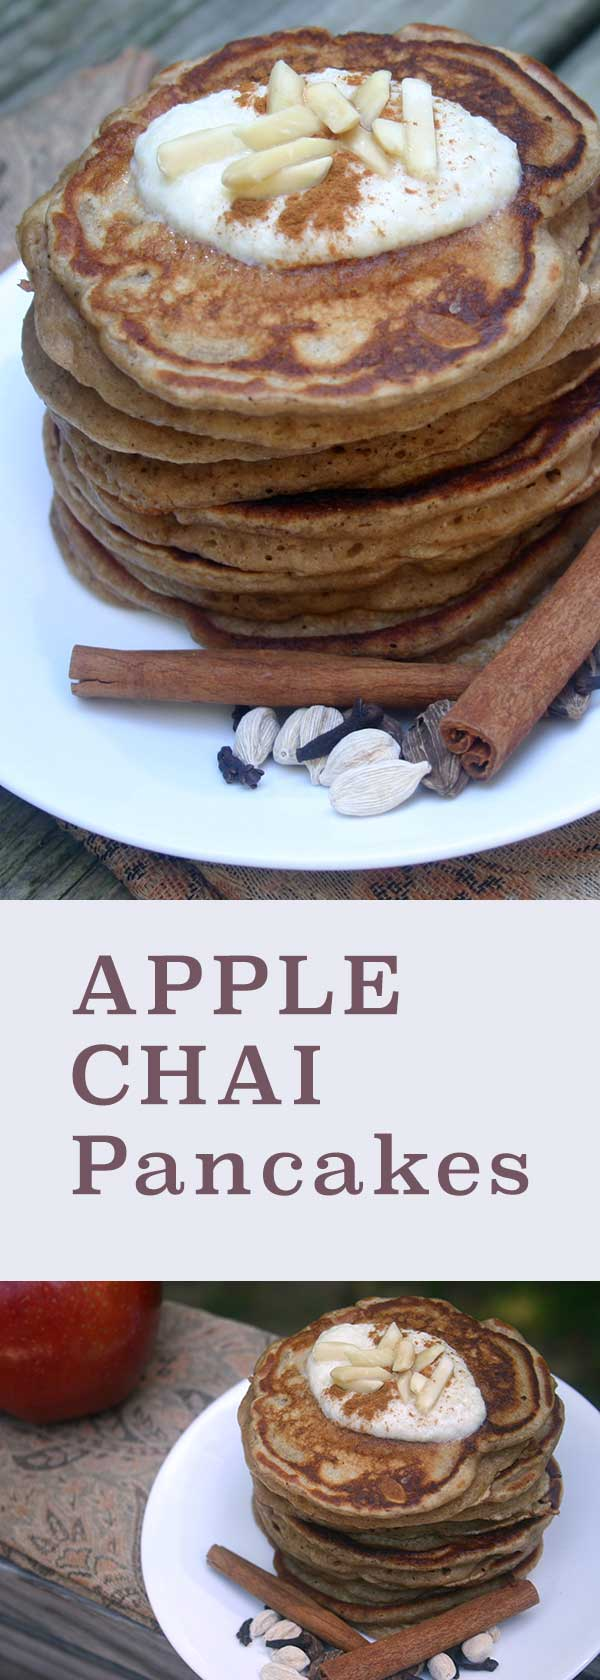 Apple Chai Pancakes with Creamy Yogurt Sauce | diabeticfoodie.com